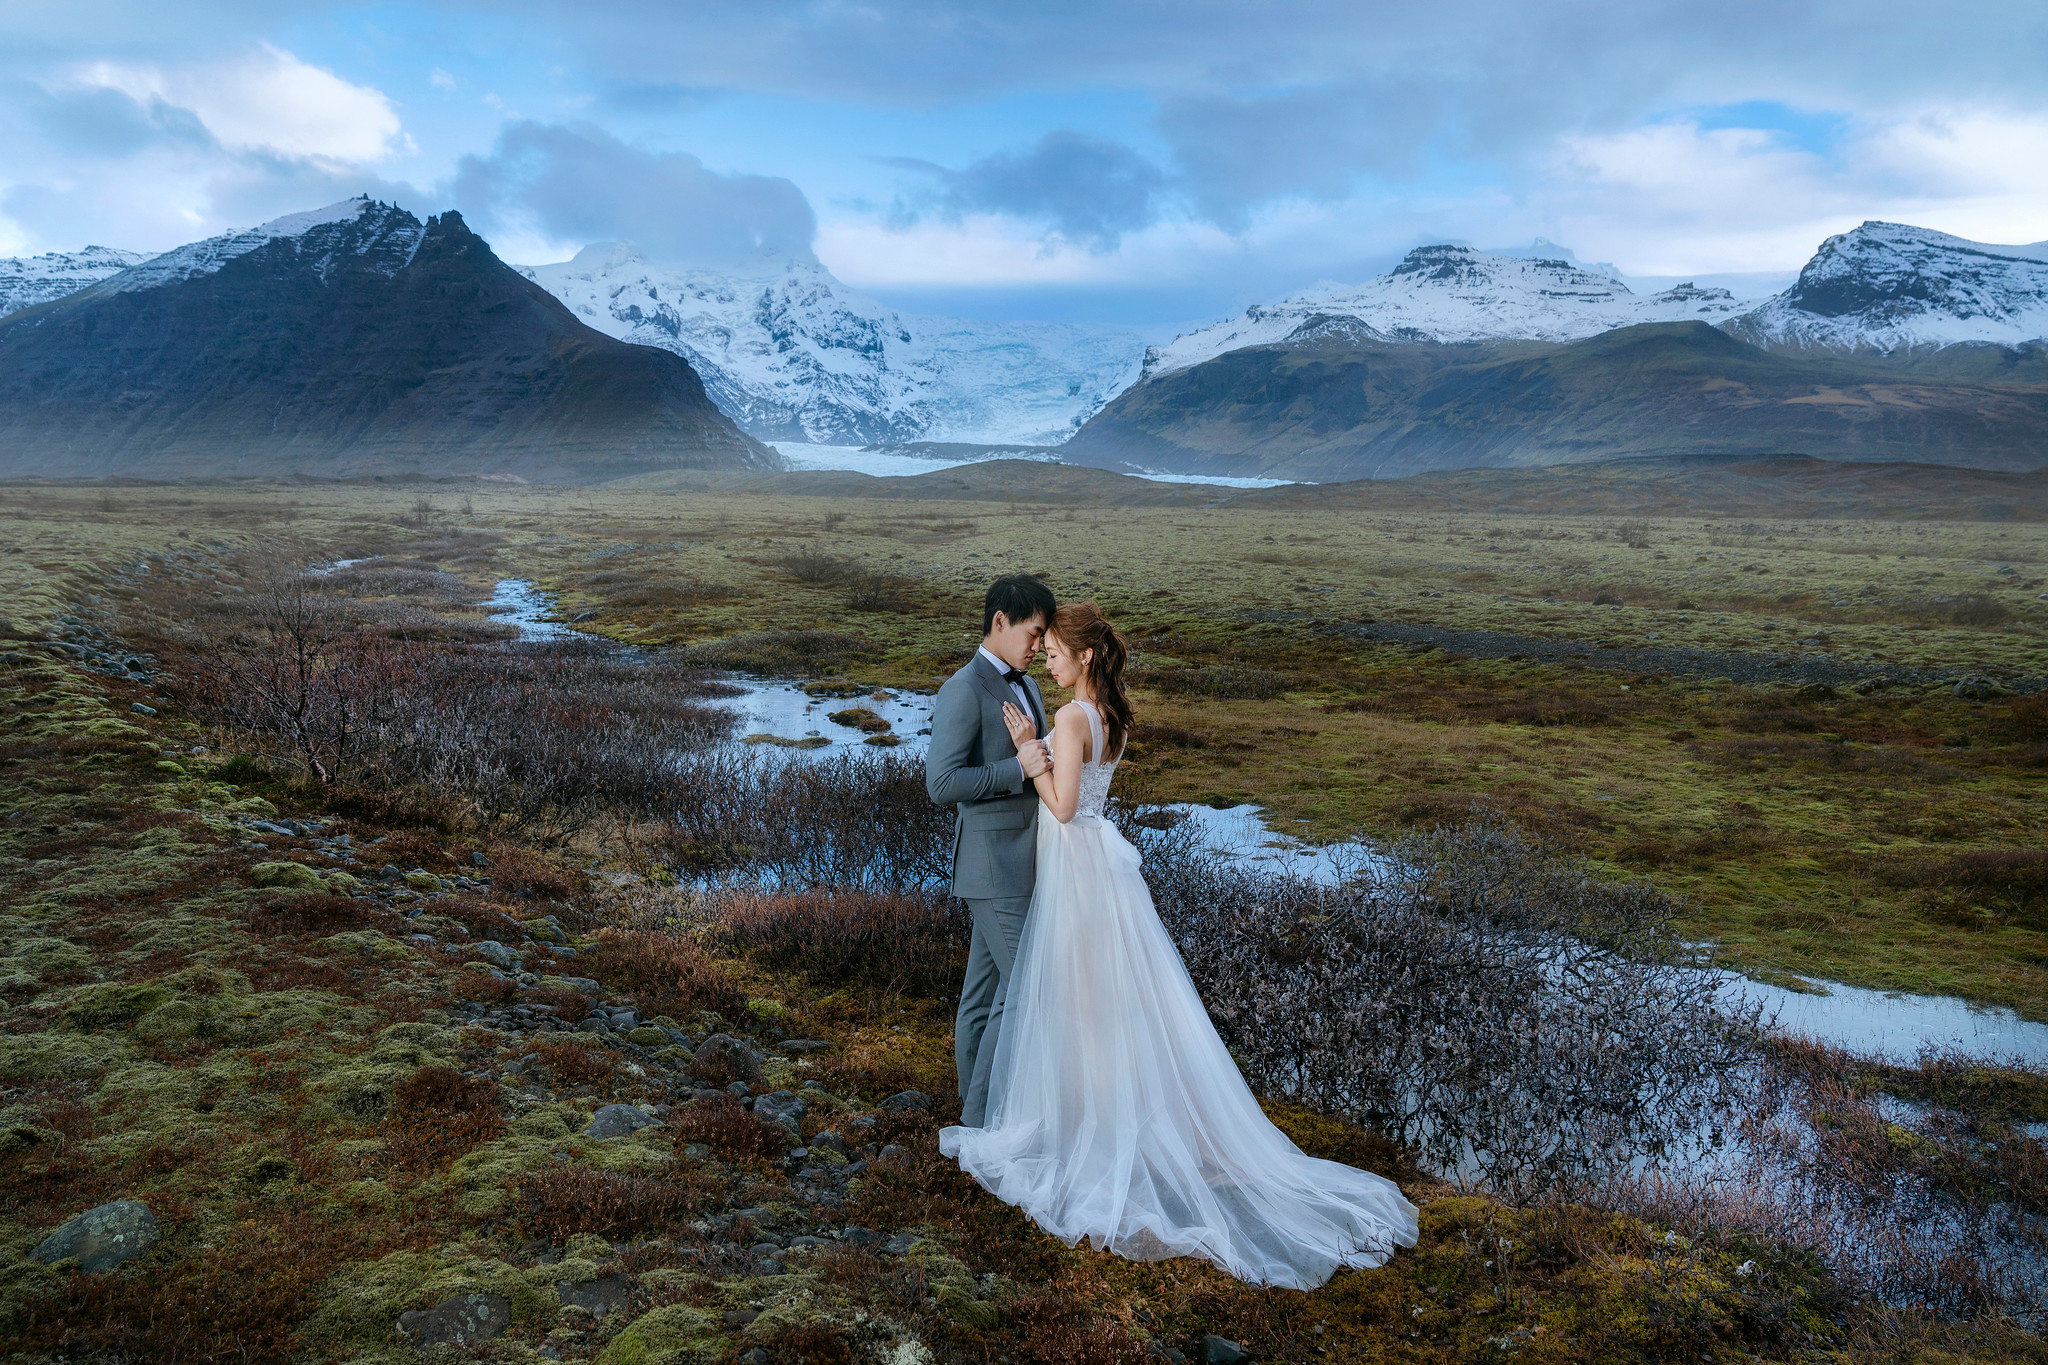 冰島婚紗攻略, 冰島婚紗, Donfer, Iceland Pre-Wedding, Svínafelljökull Glacier point of view